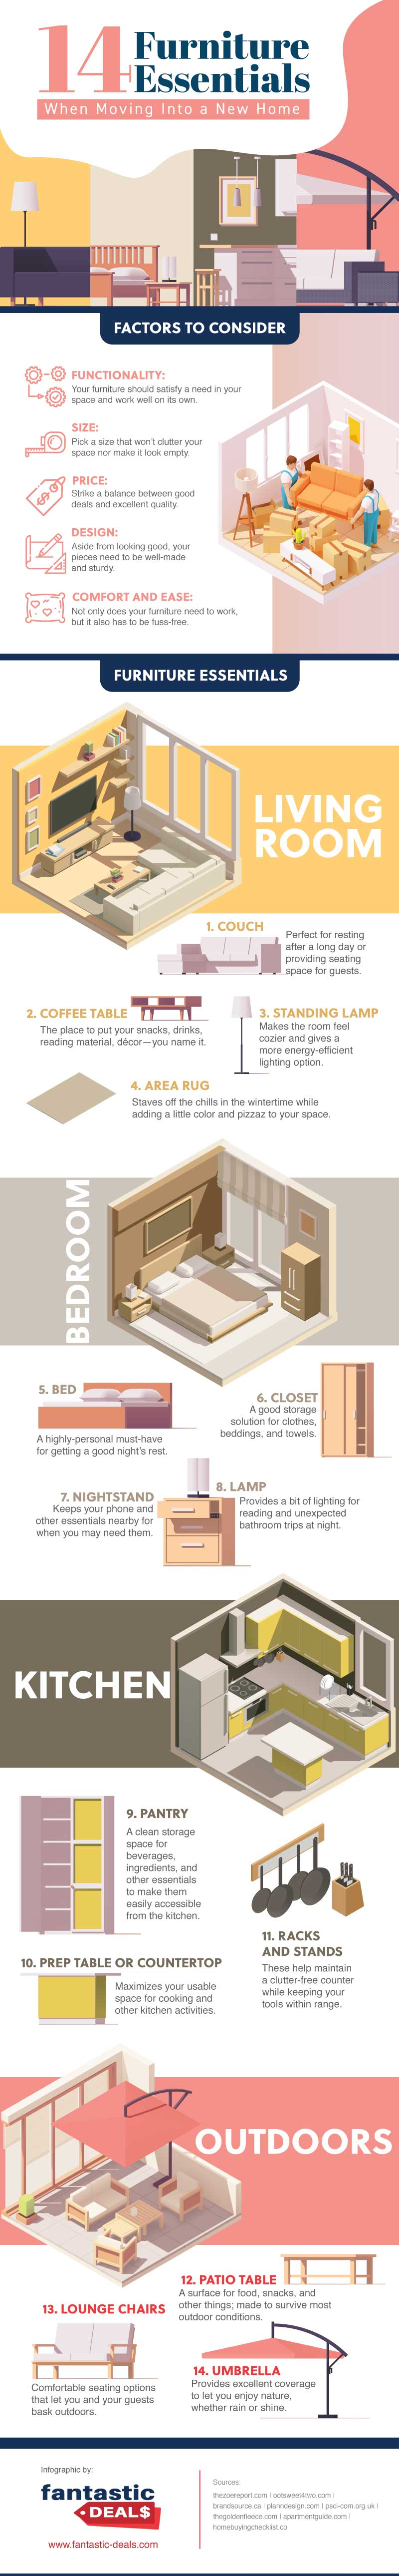 14 Furniture Essentials When Moving Into A New Home Infographic